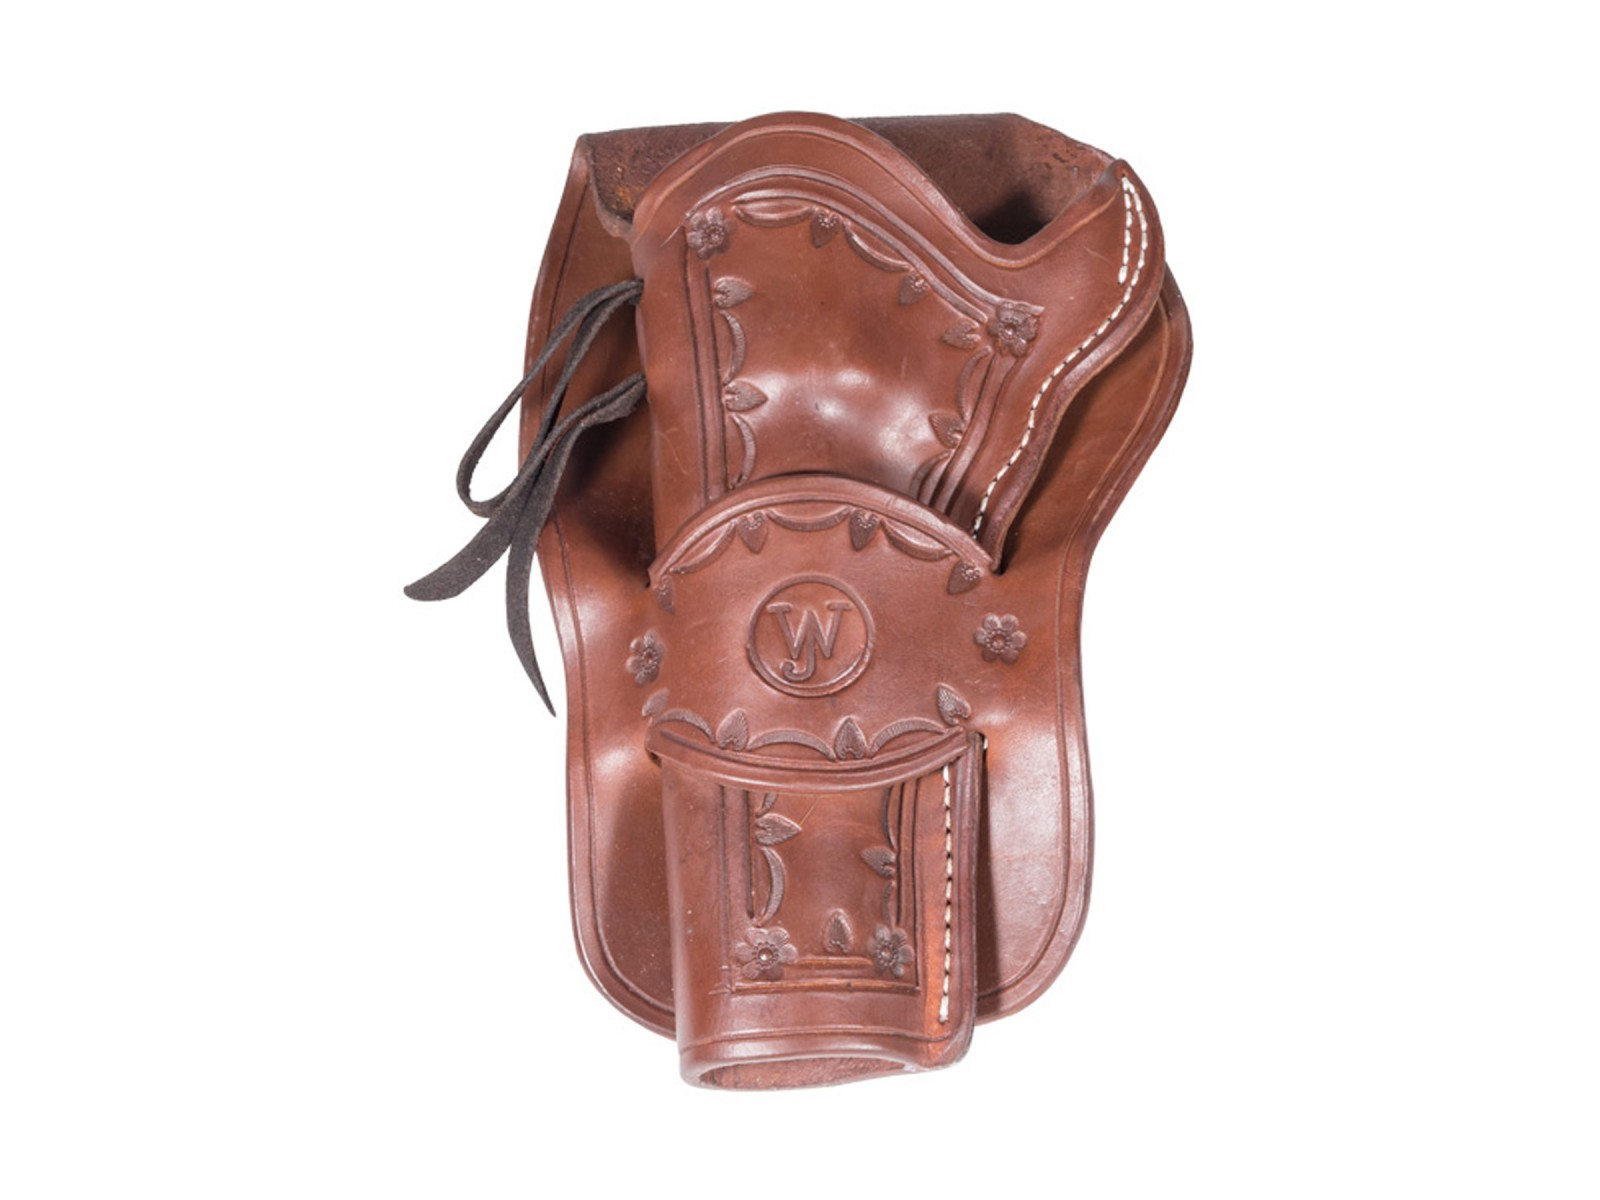 Western Justice Hand-Tooled Leather Holster